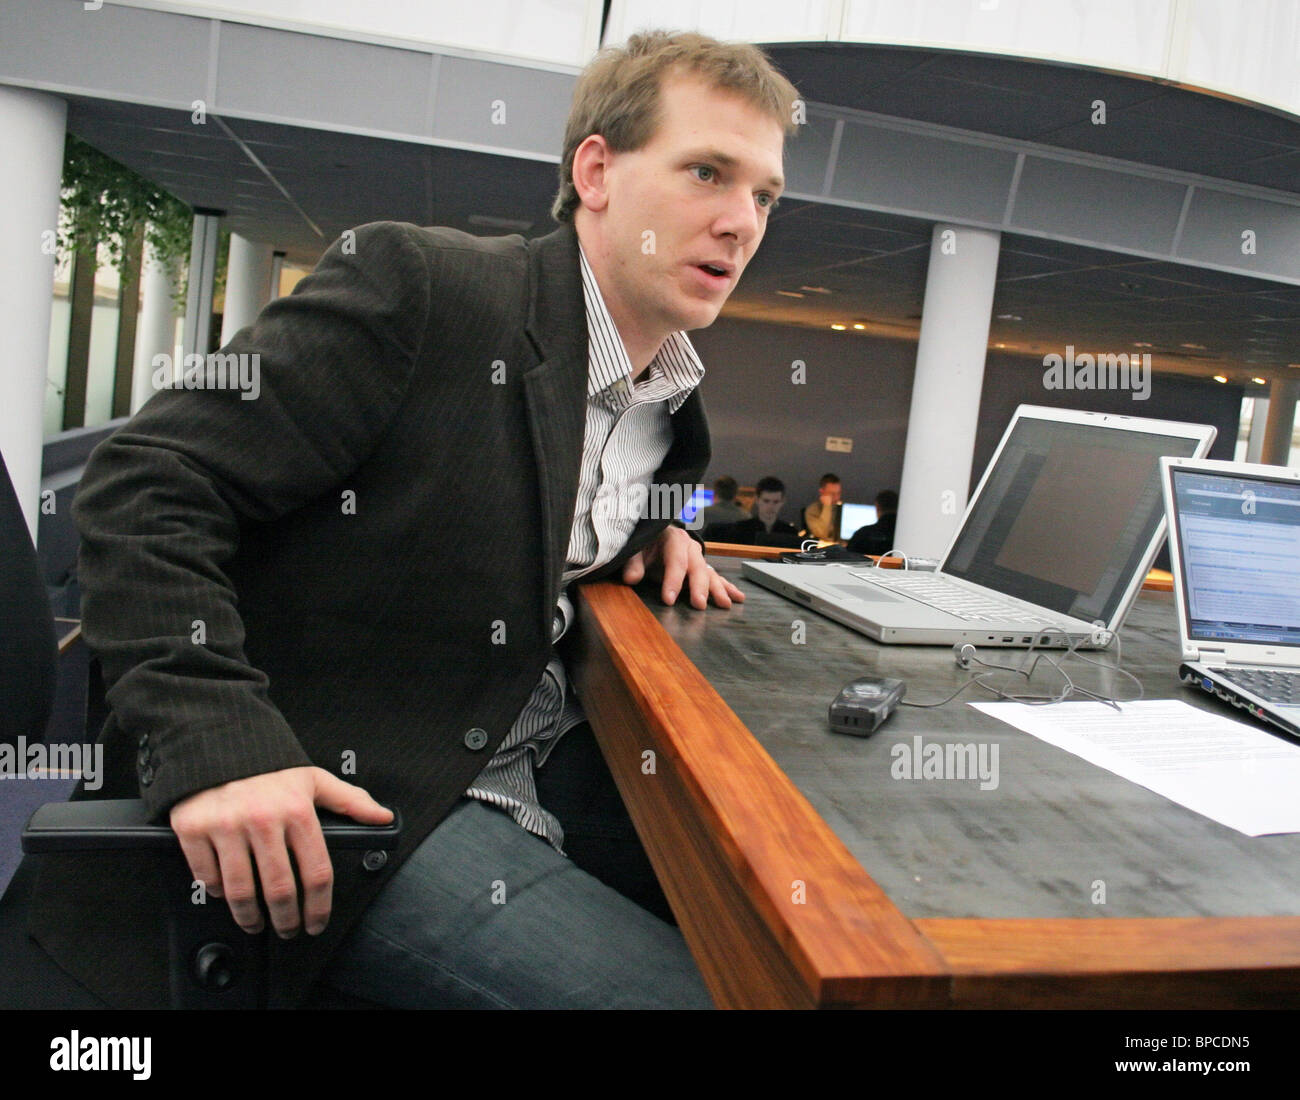 Russia October 20 Livejournal Founder Brad Fitzpatrick Stock Photos